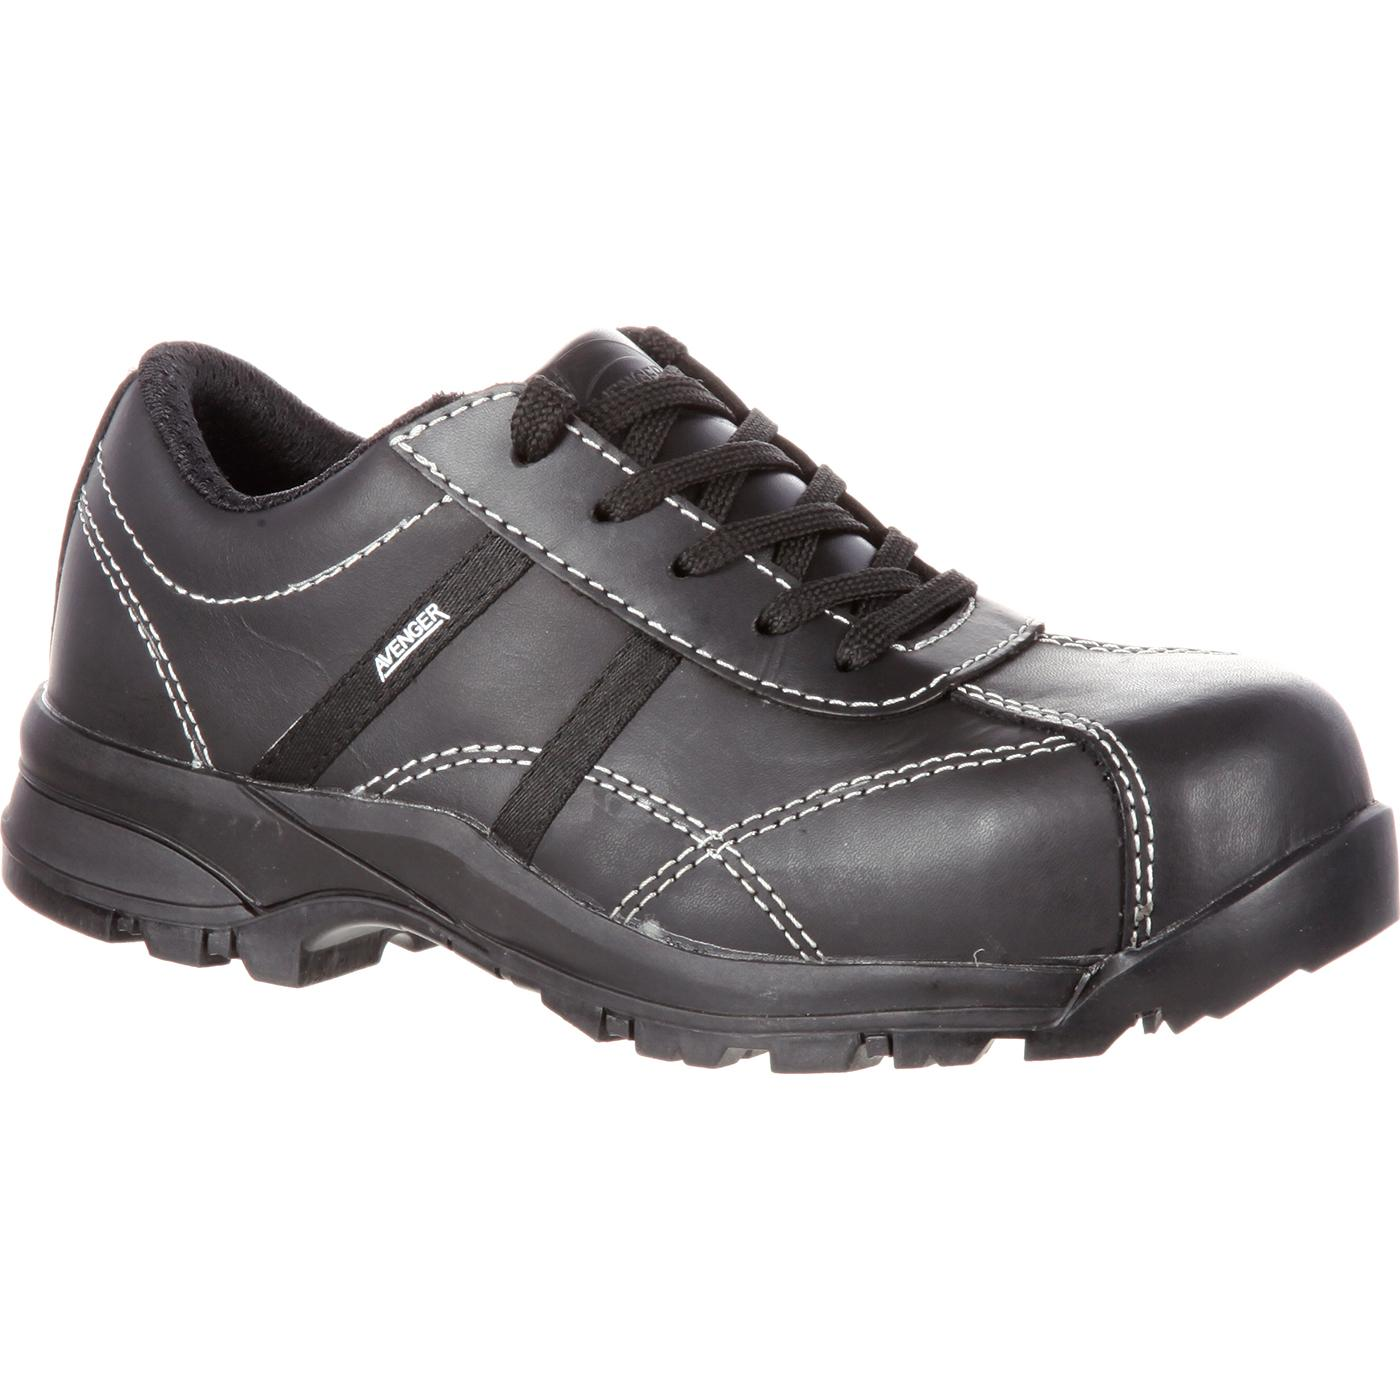 Avenger Women s Composite Toe Black Leather Work Shoe 32e526c93c